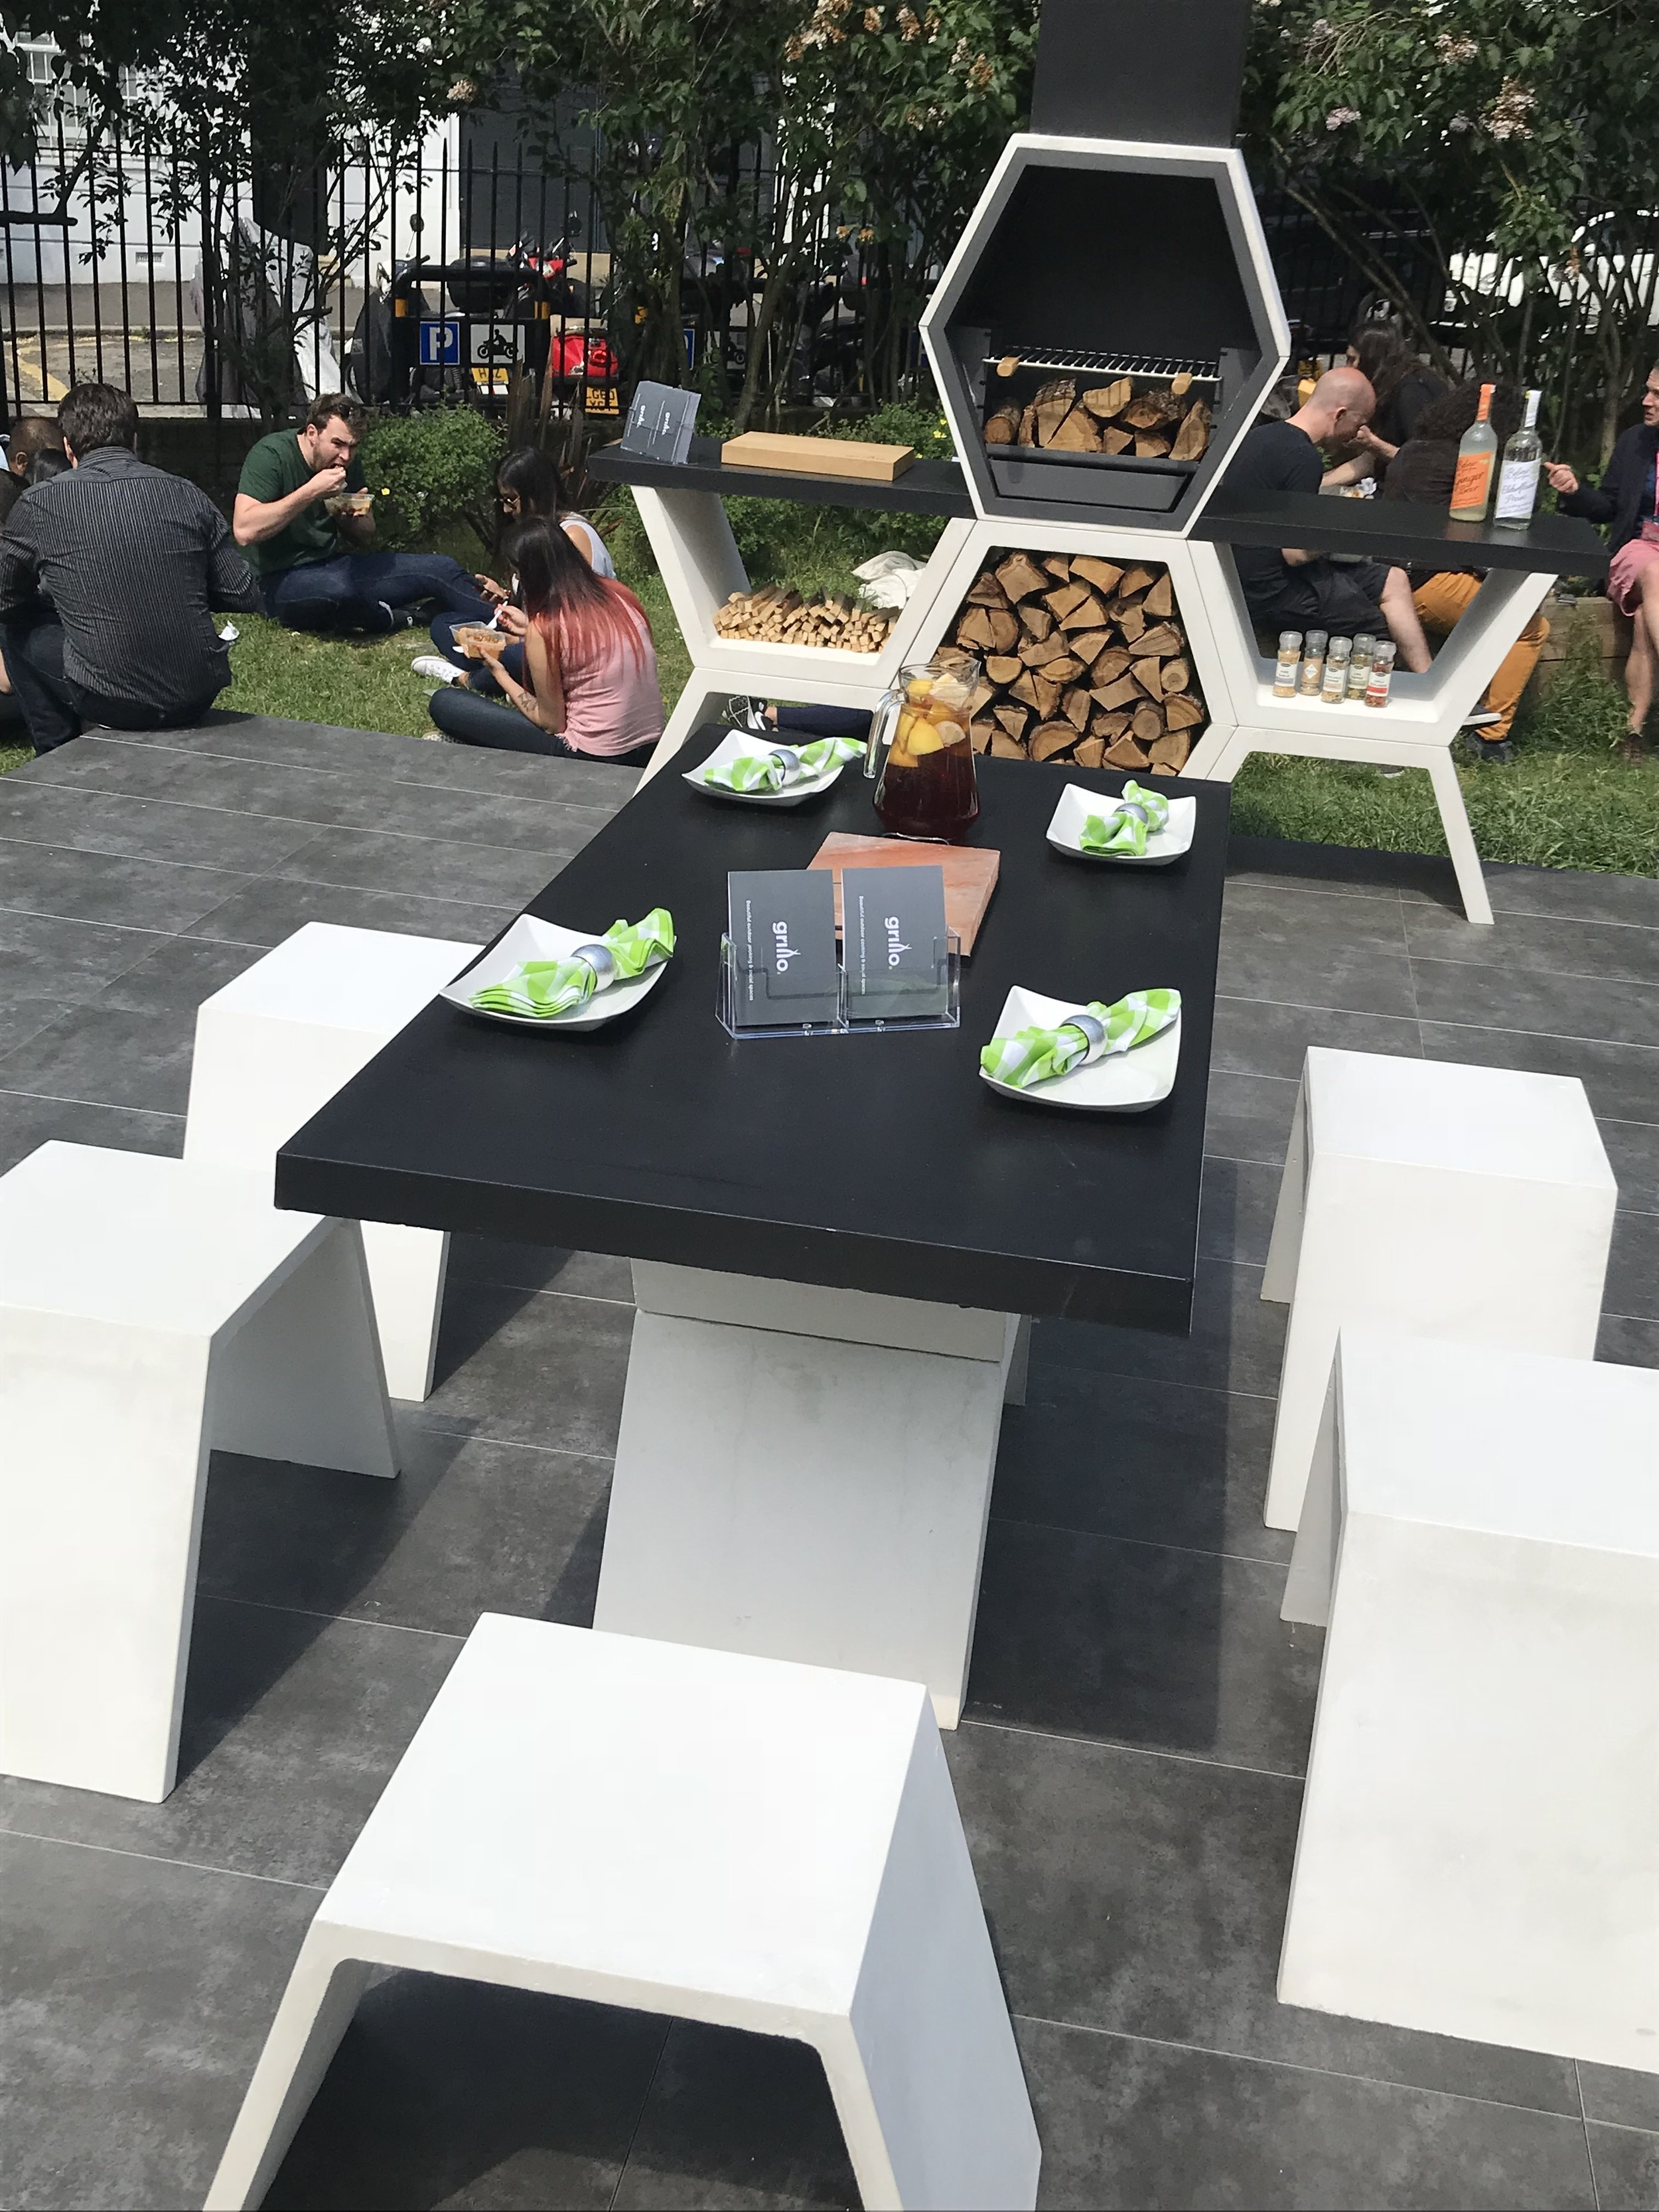 Grillo were exhibiting the Grillo Forge with a layout including a bar and stools (appox. £20,000), and the Grillo Element collection, consisting of barbecue, table and seats (approx £3,500).